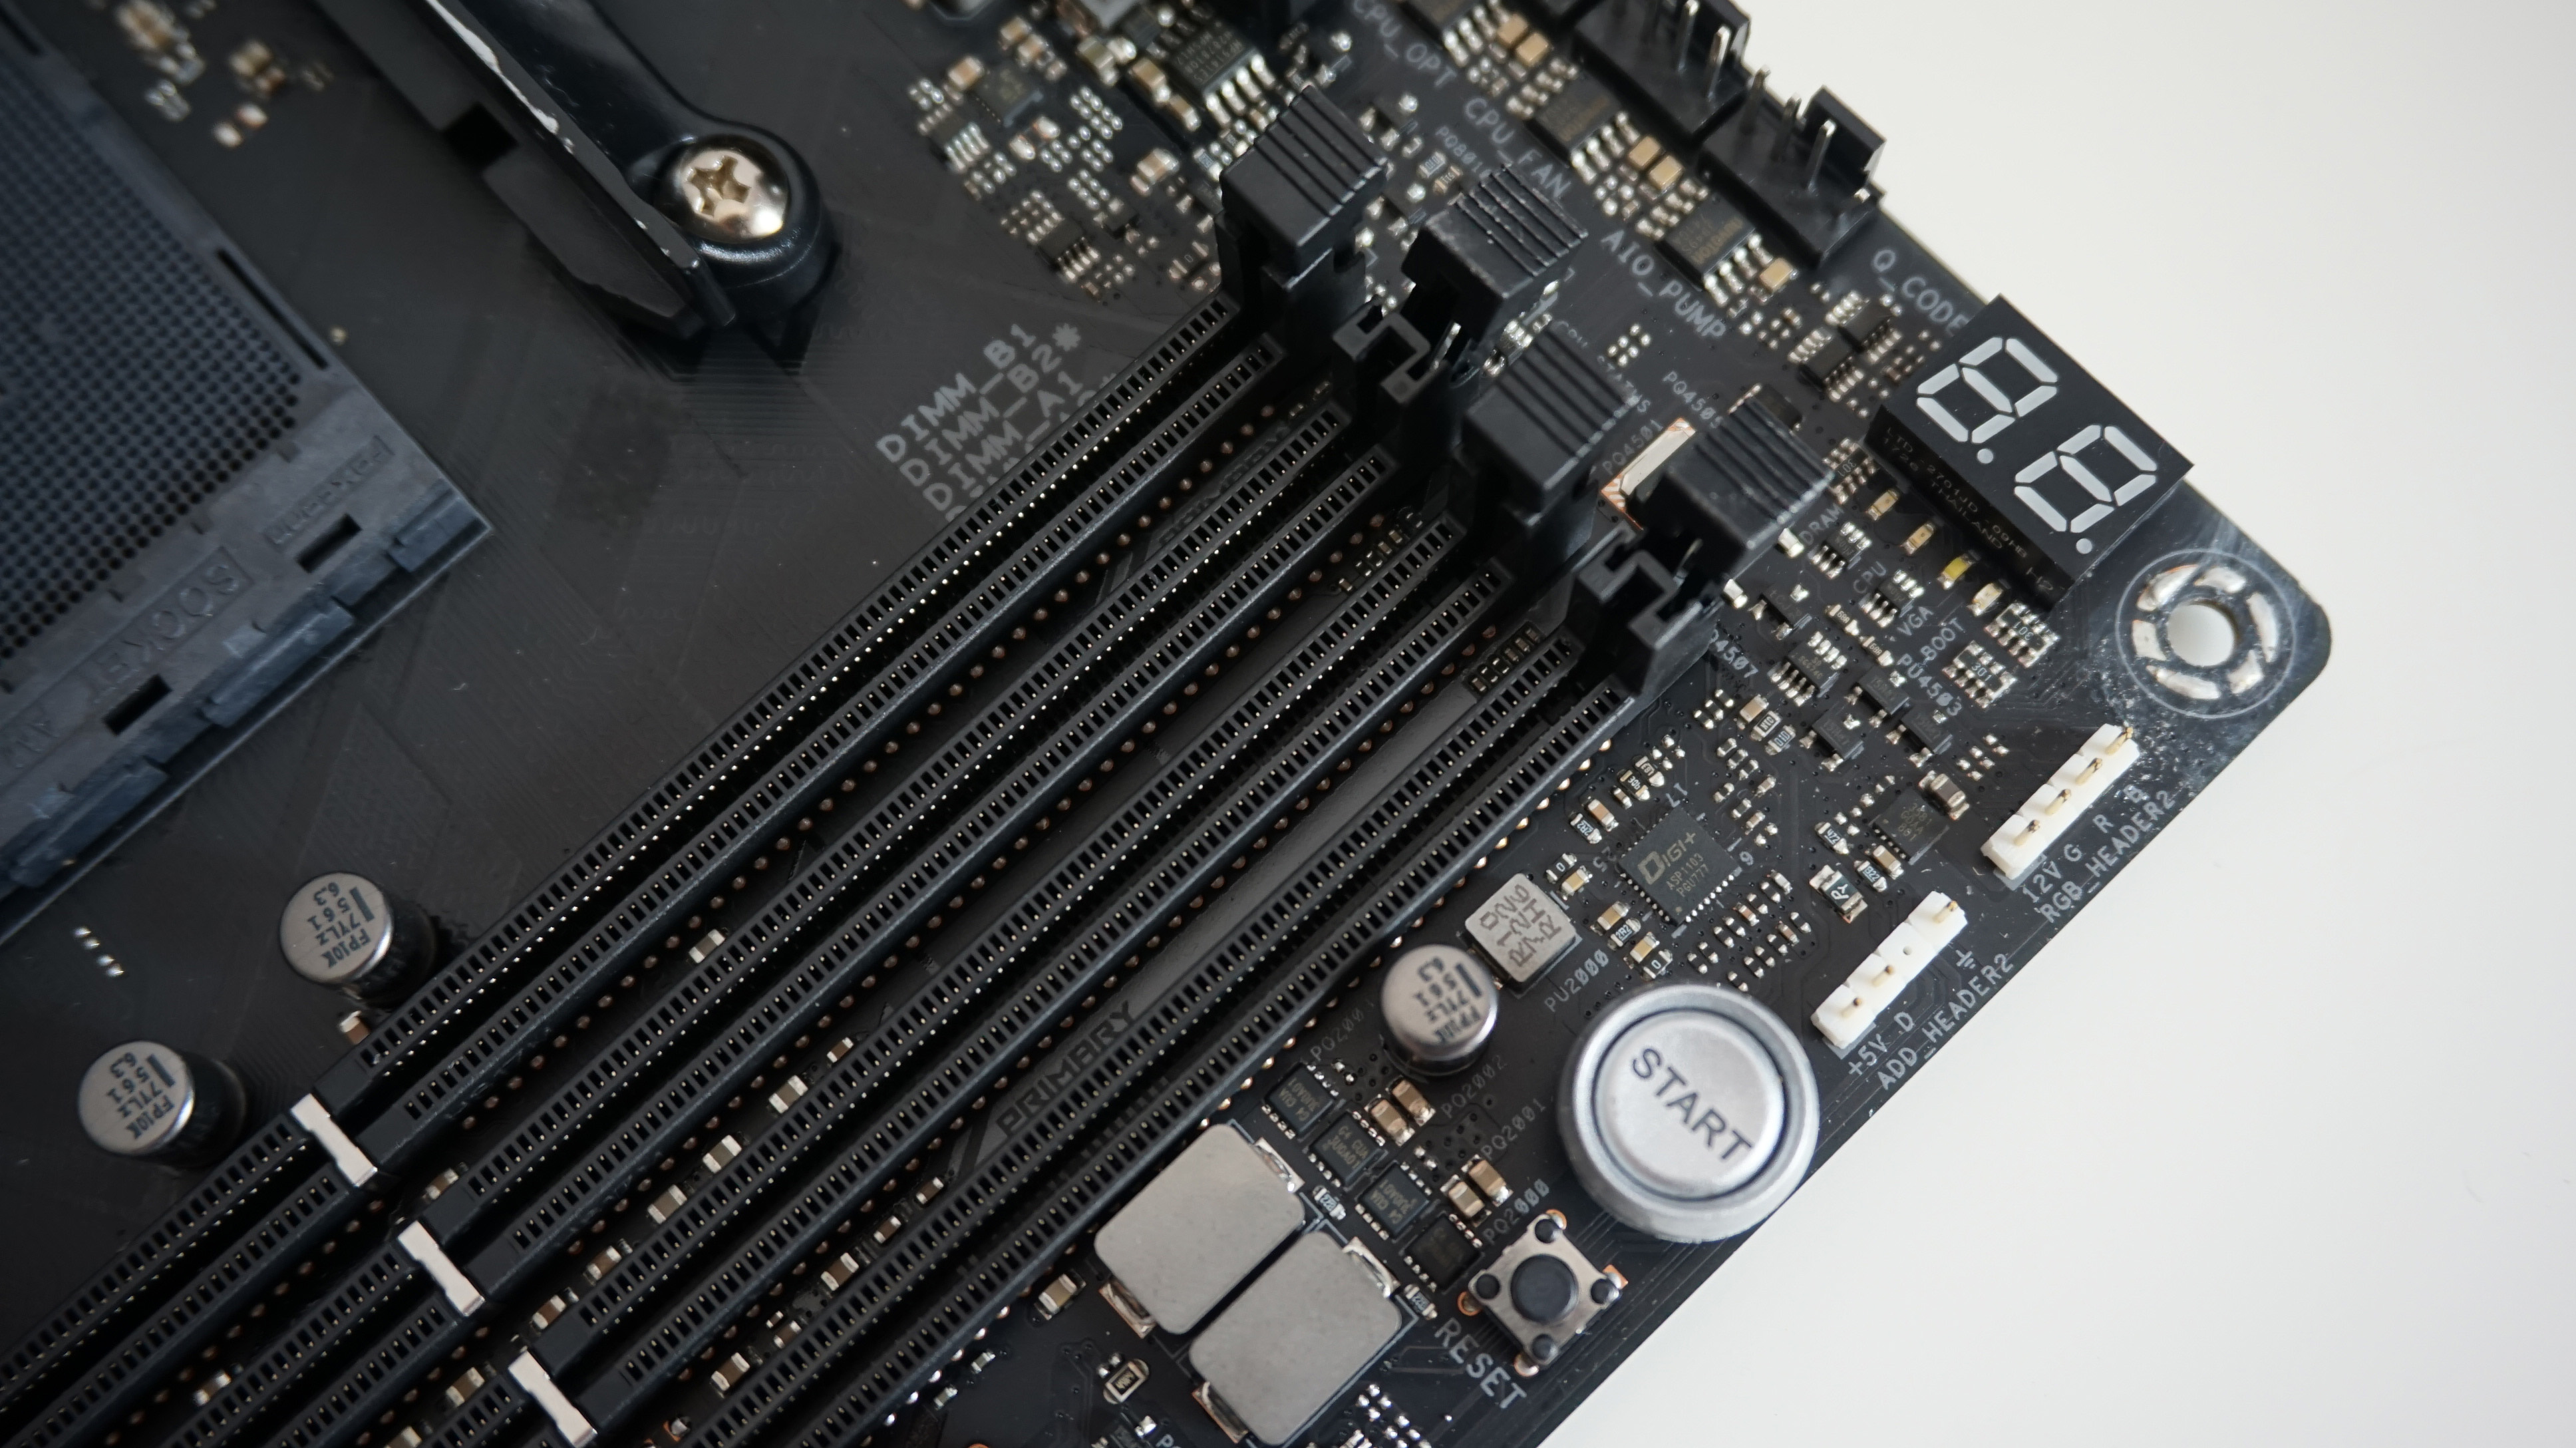 Asus ROG Crosshair VII Hero (Wi-Fi) review: The coolest motherboard